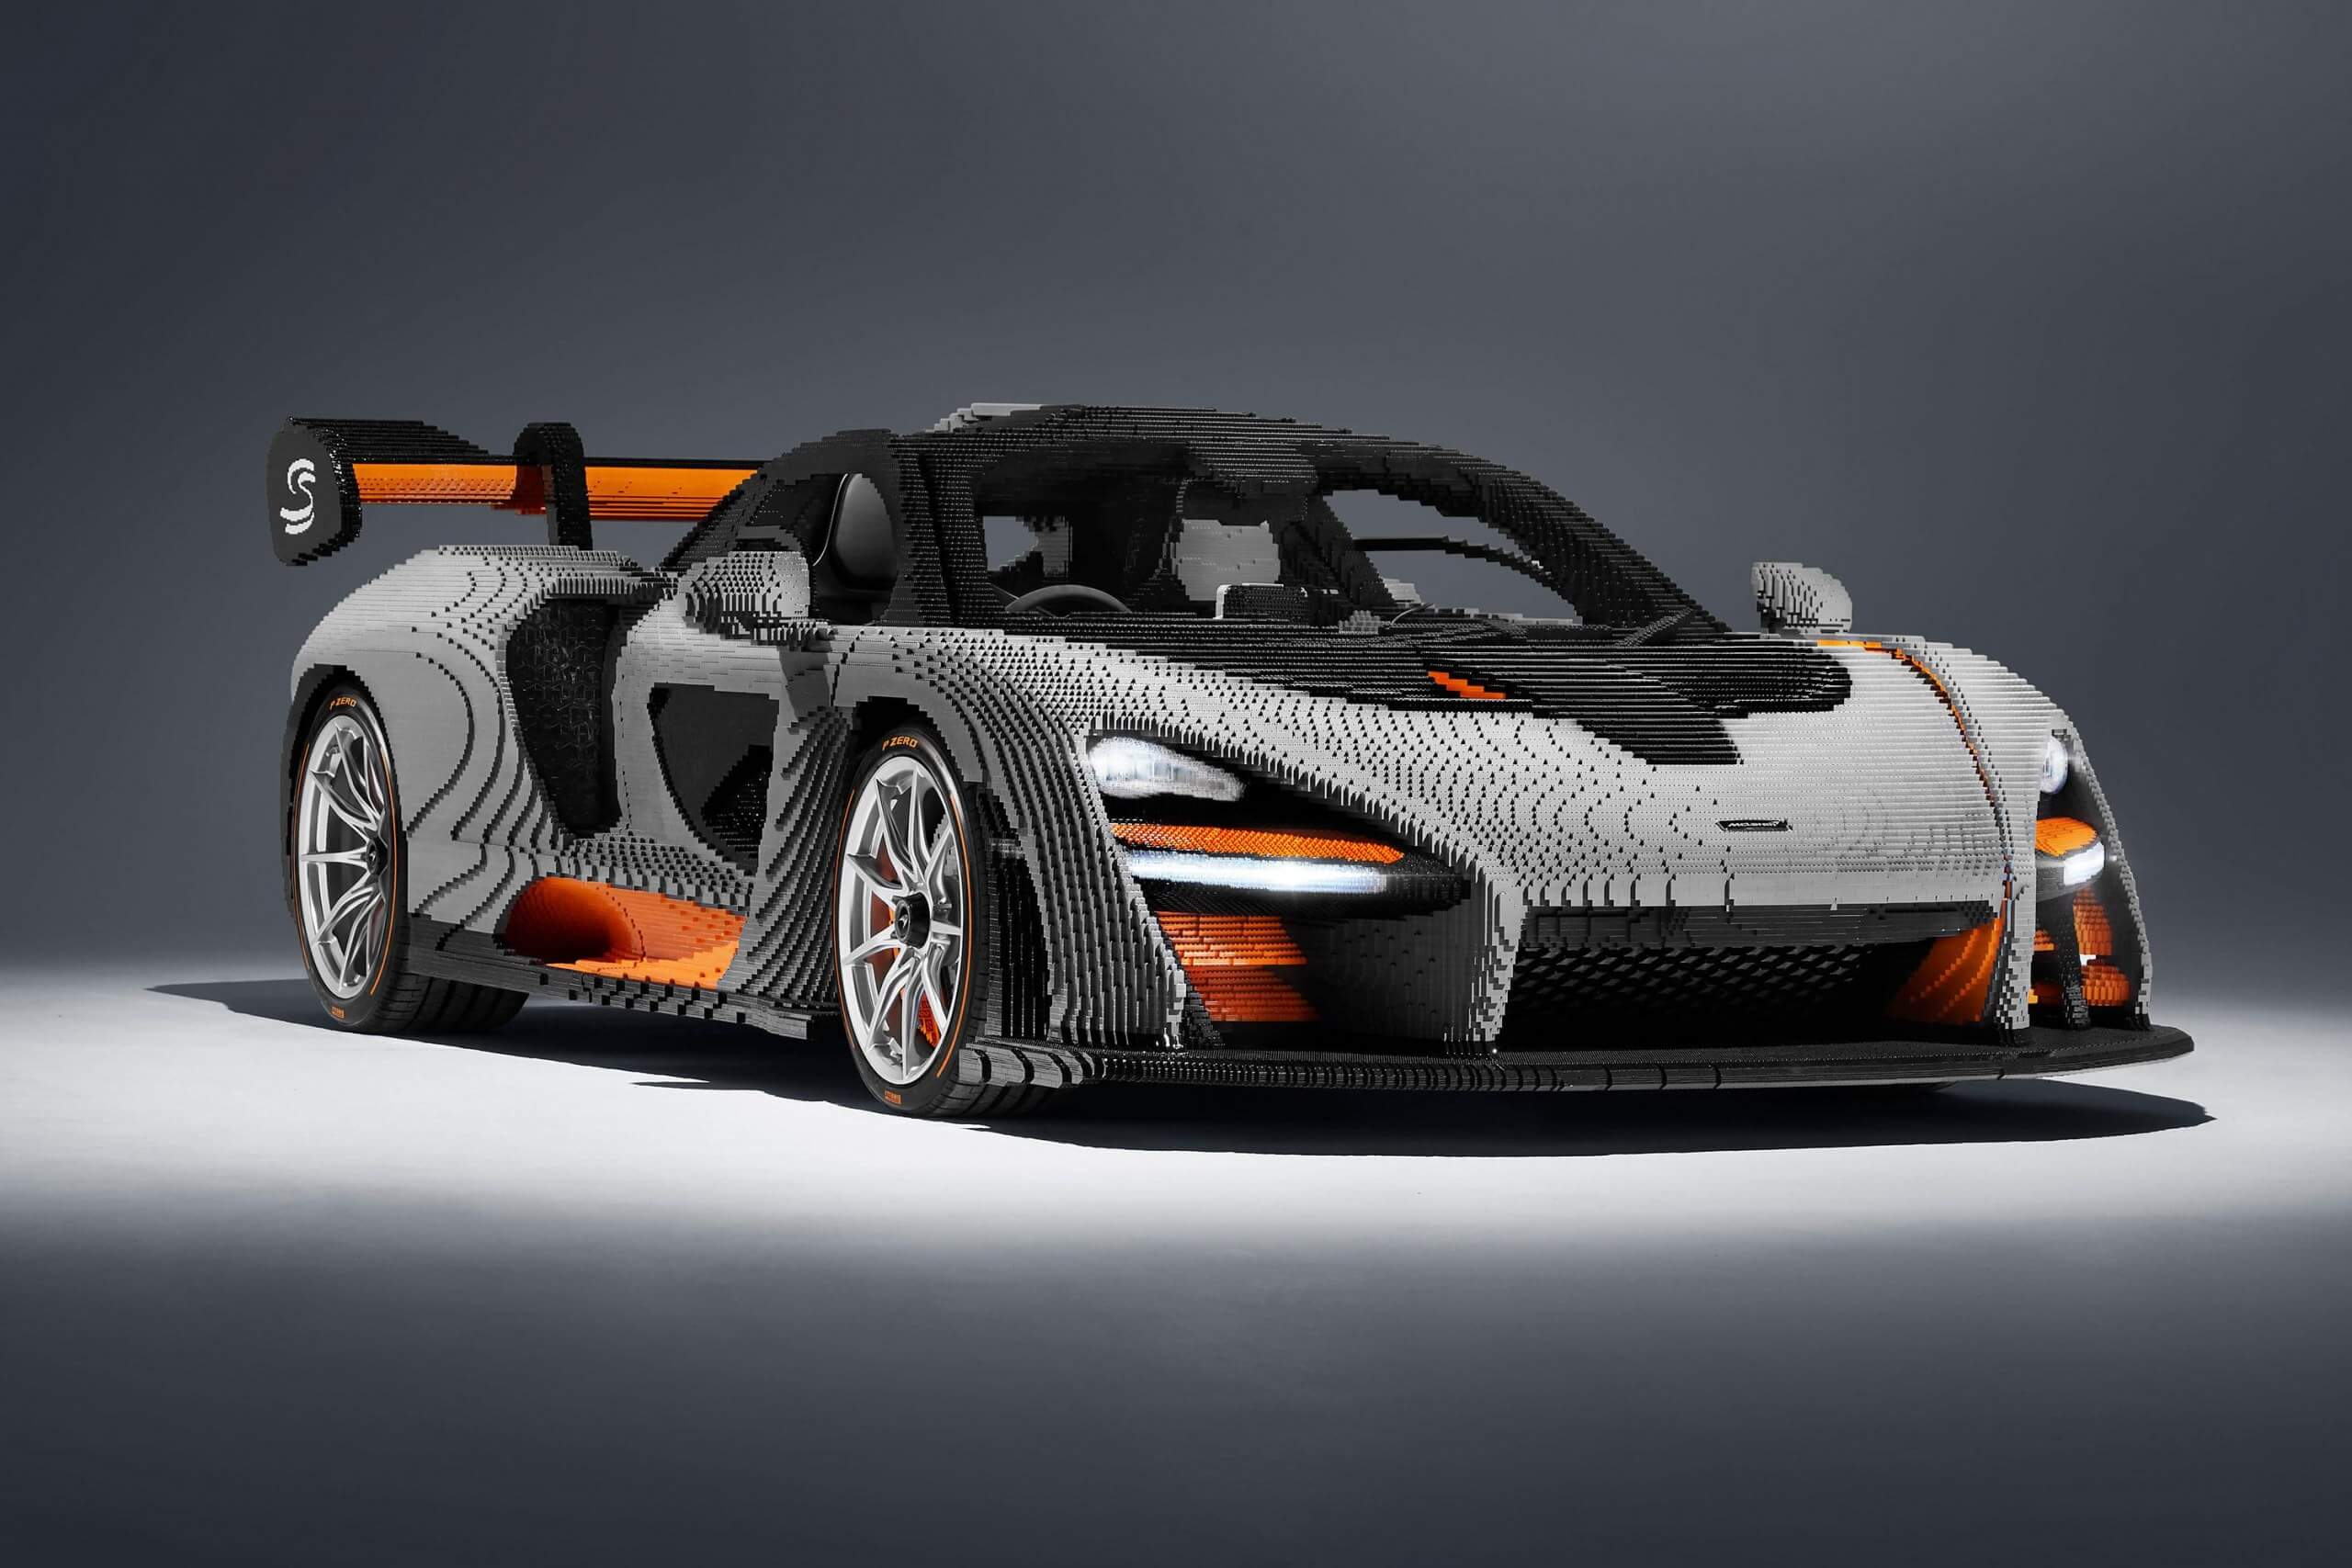 Replica ???? Lego S Latest 1 1 Replica Is The Mclaren Senna Which Took Four